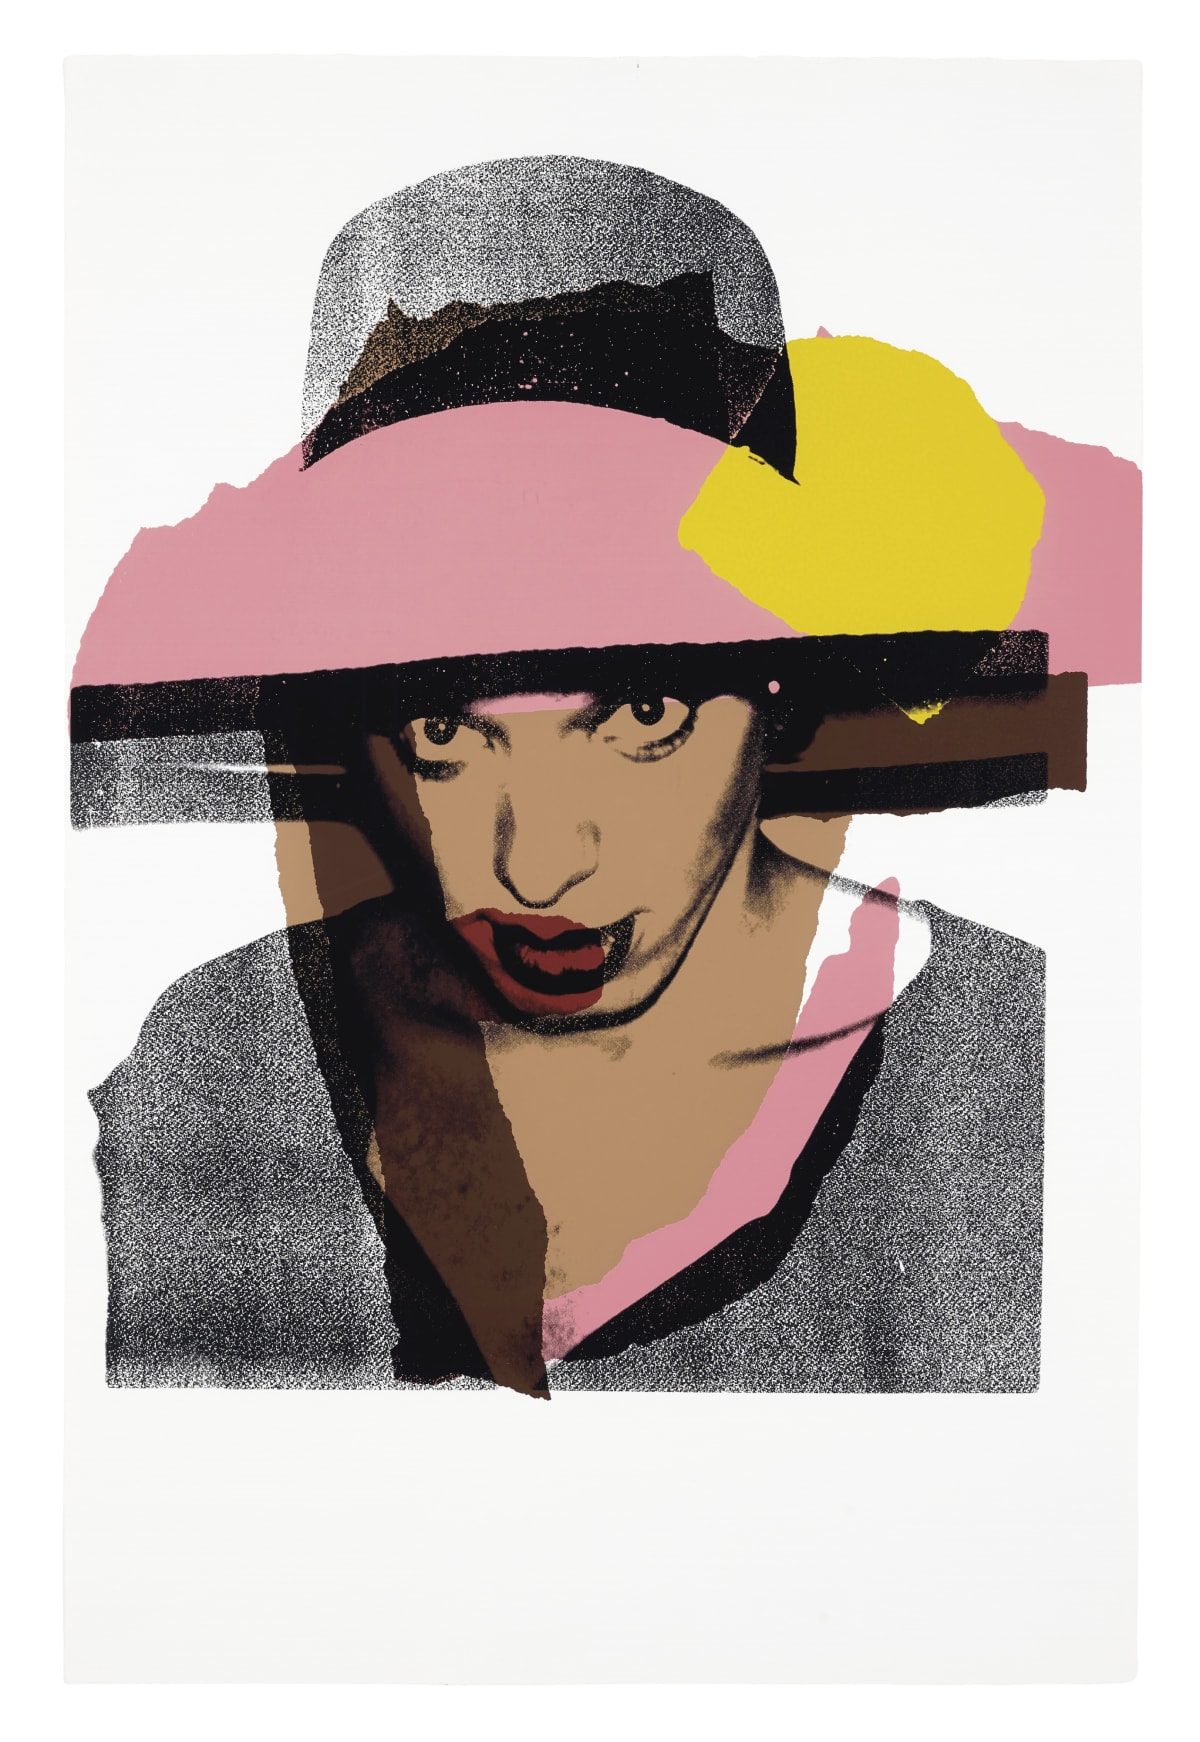 Ladies and Gentlemen, II.130, 1975, by Andy Warhol, Portfolio of Ten Screenprints from an edition of 125, at Coskun Fine Art